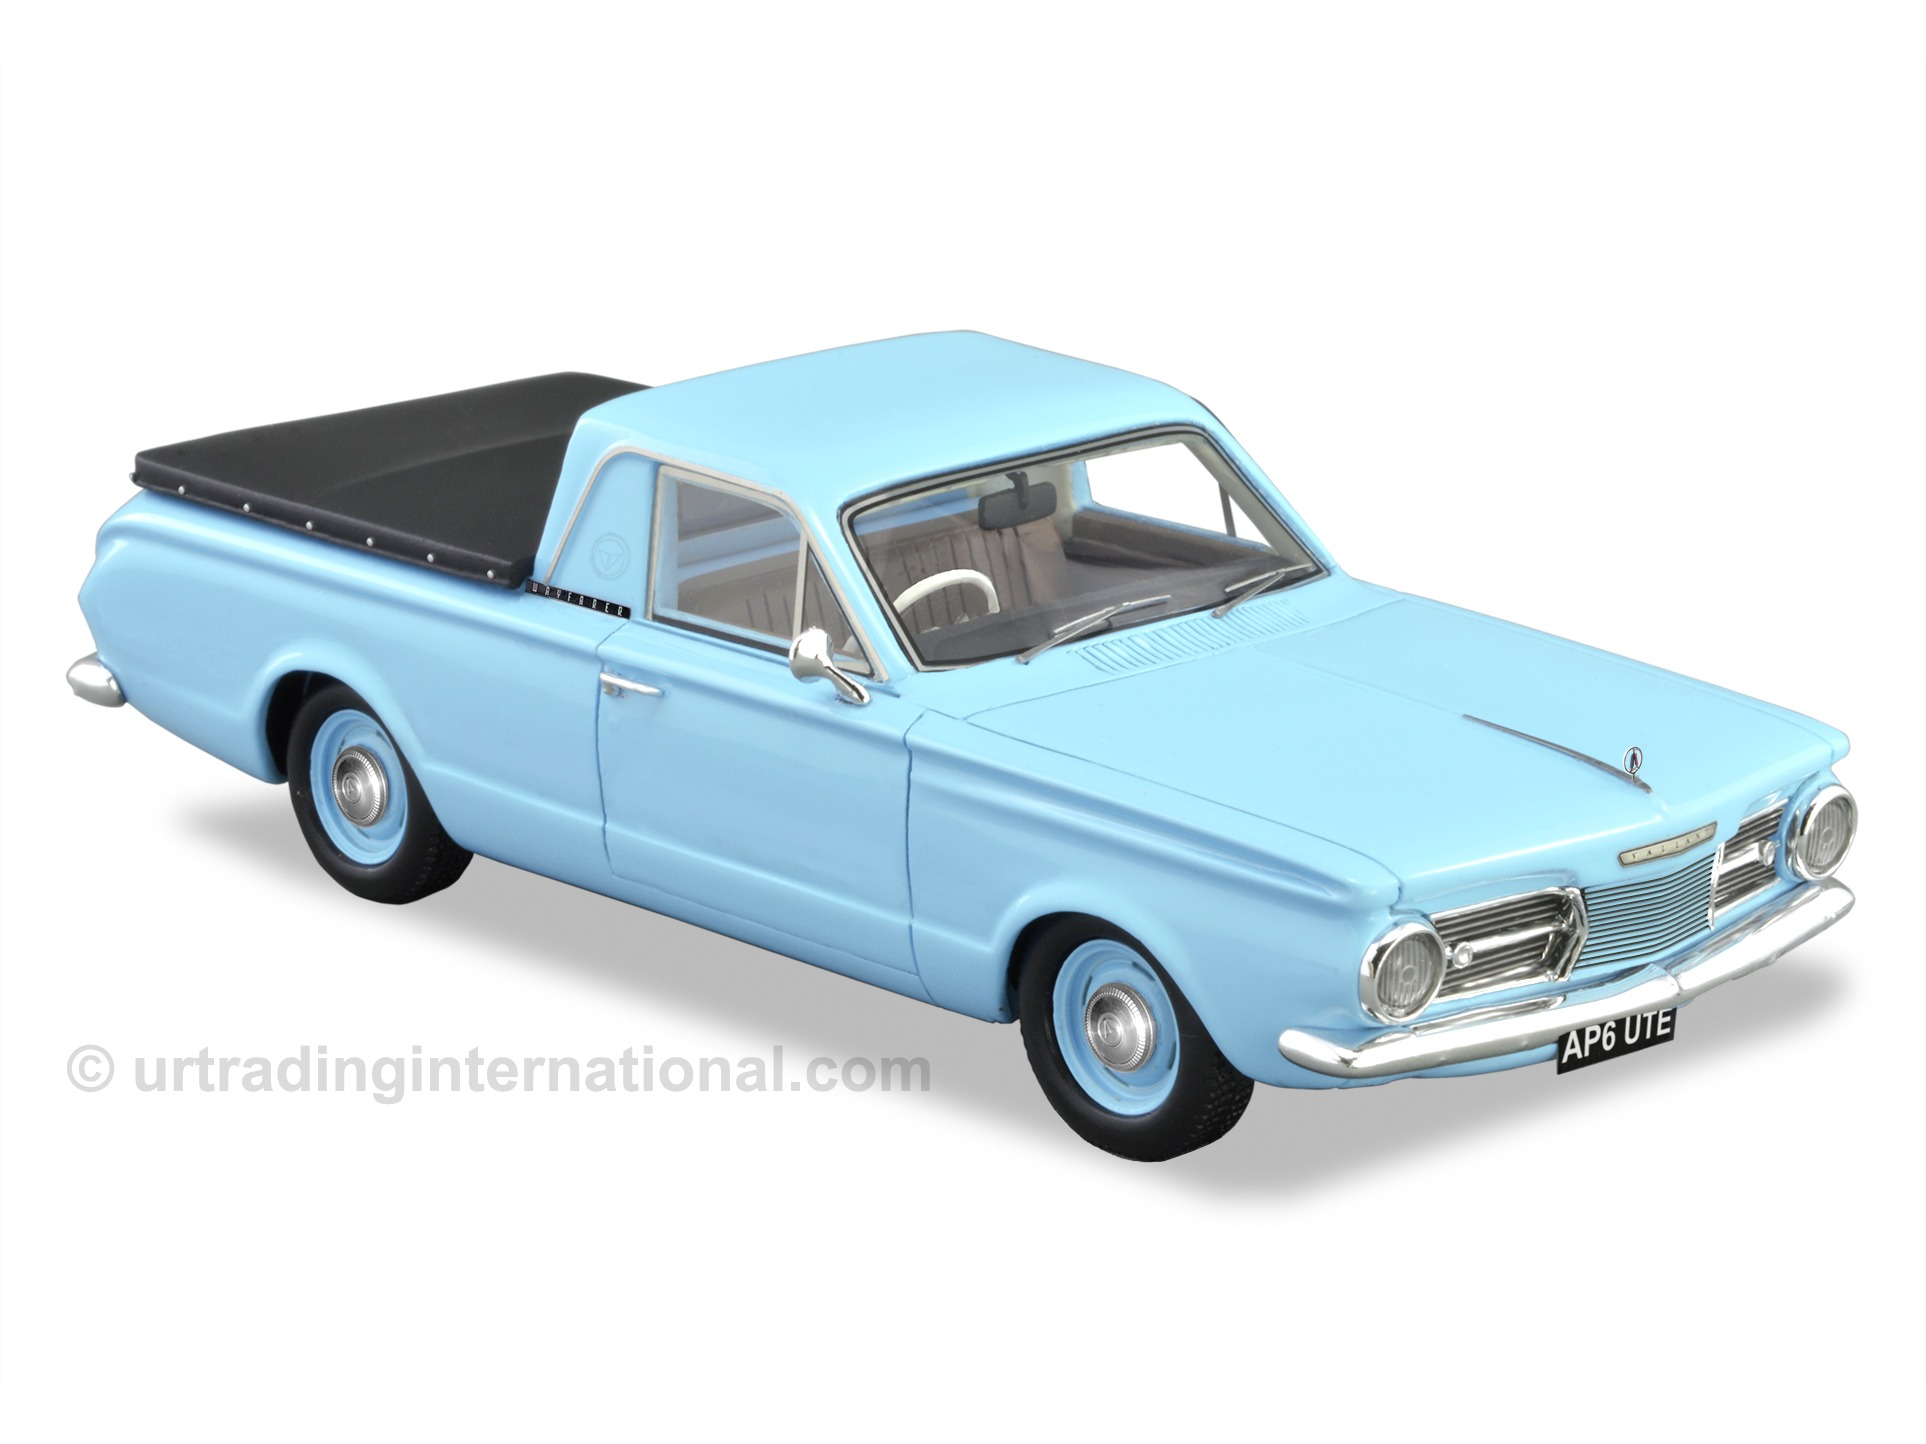 1965 Chrysler Valiant AP6 Ute – Blue